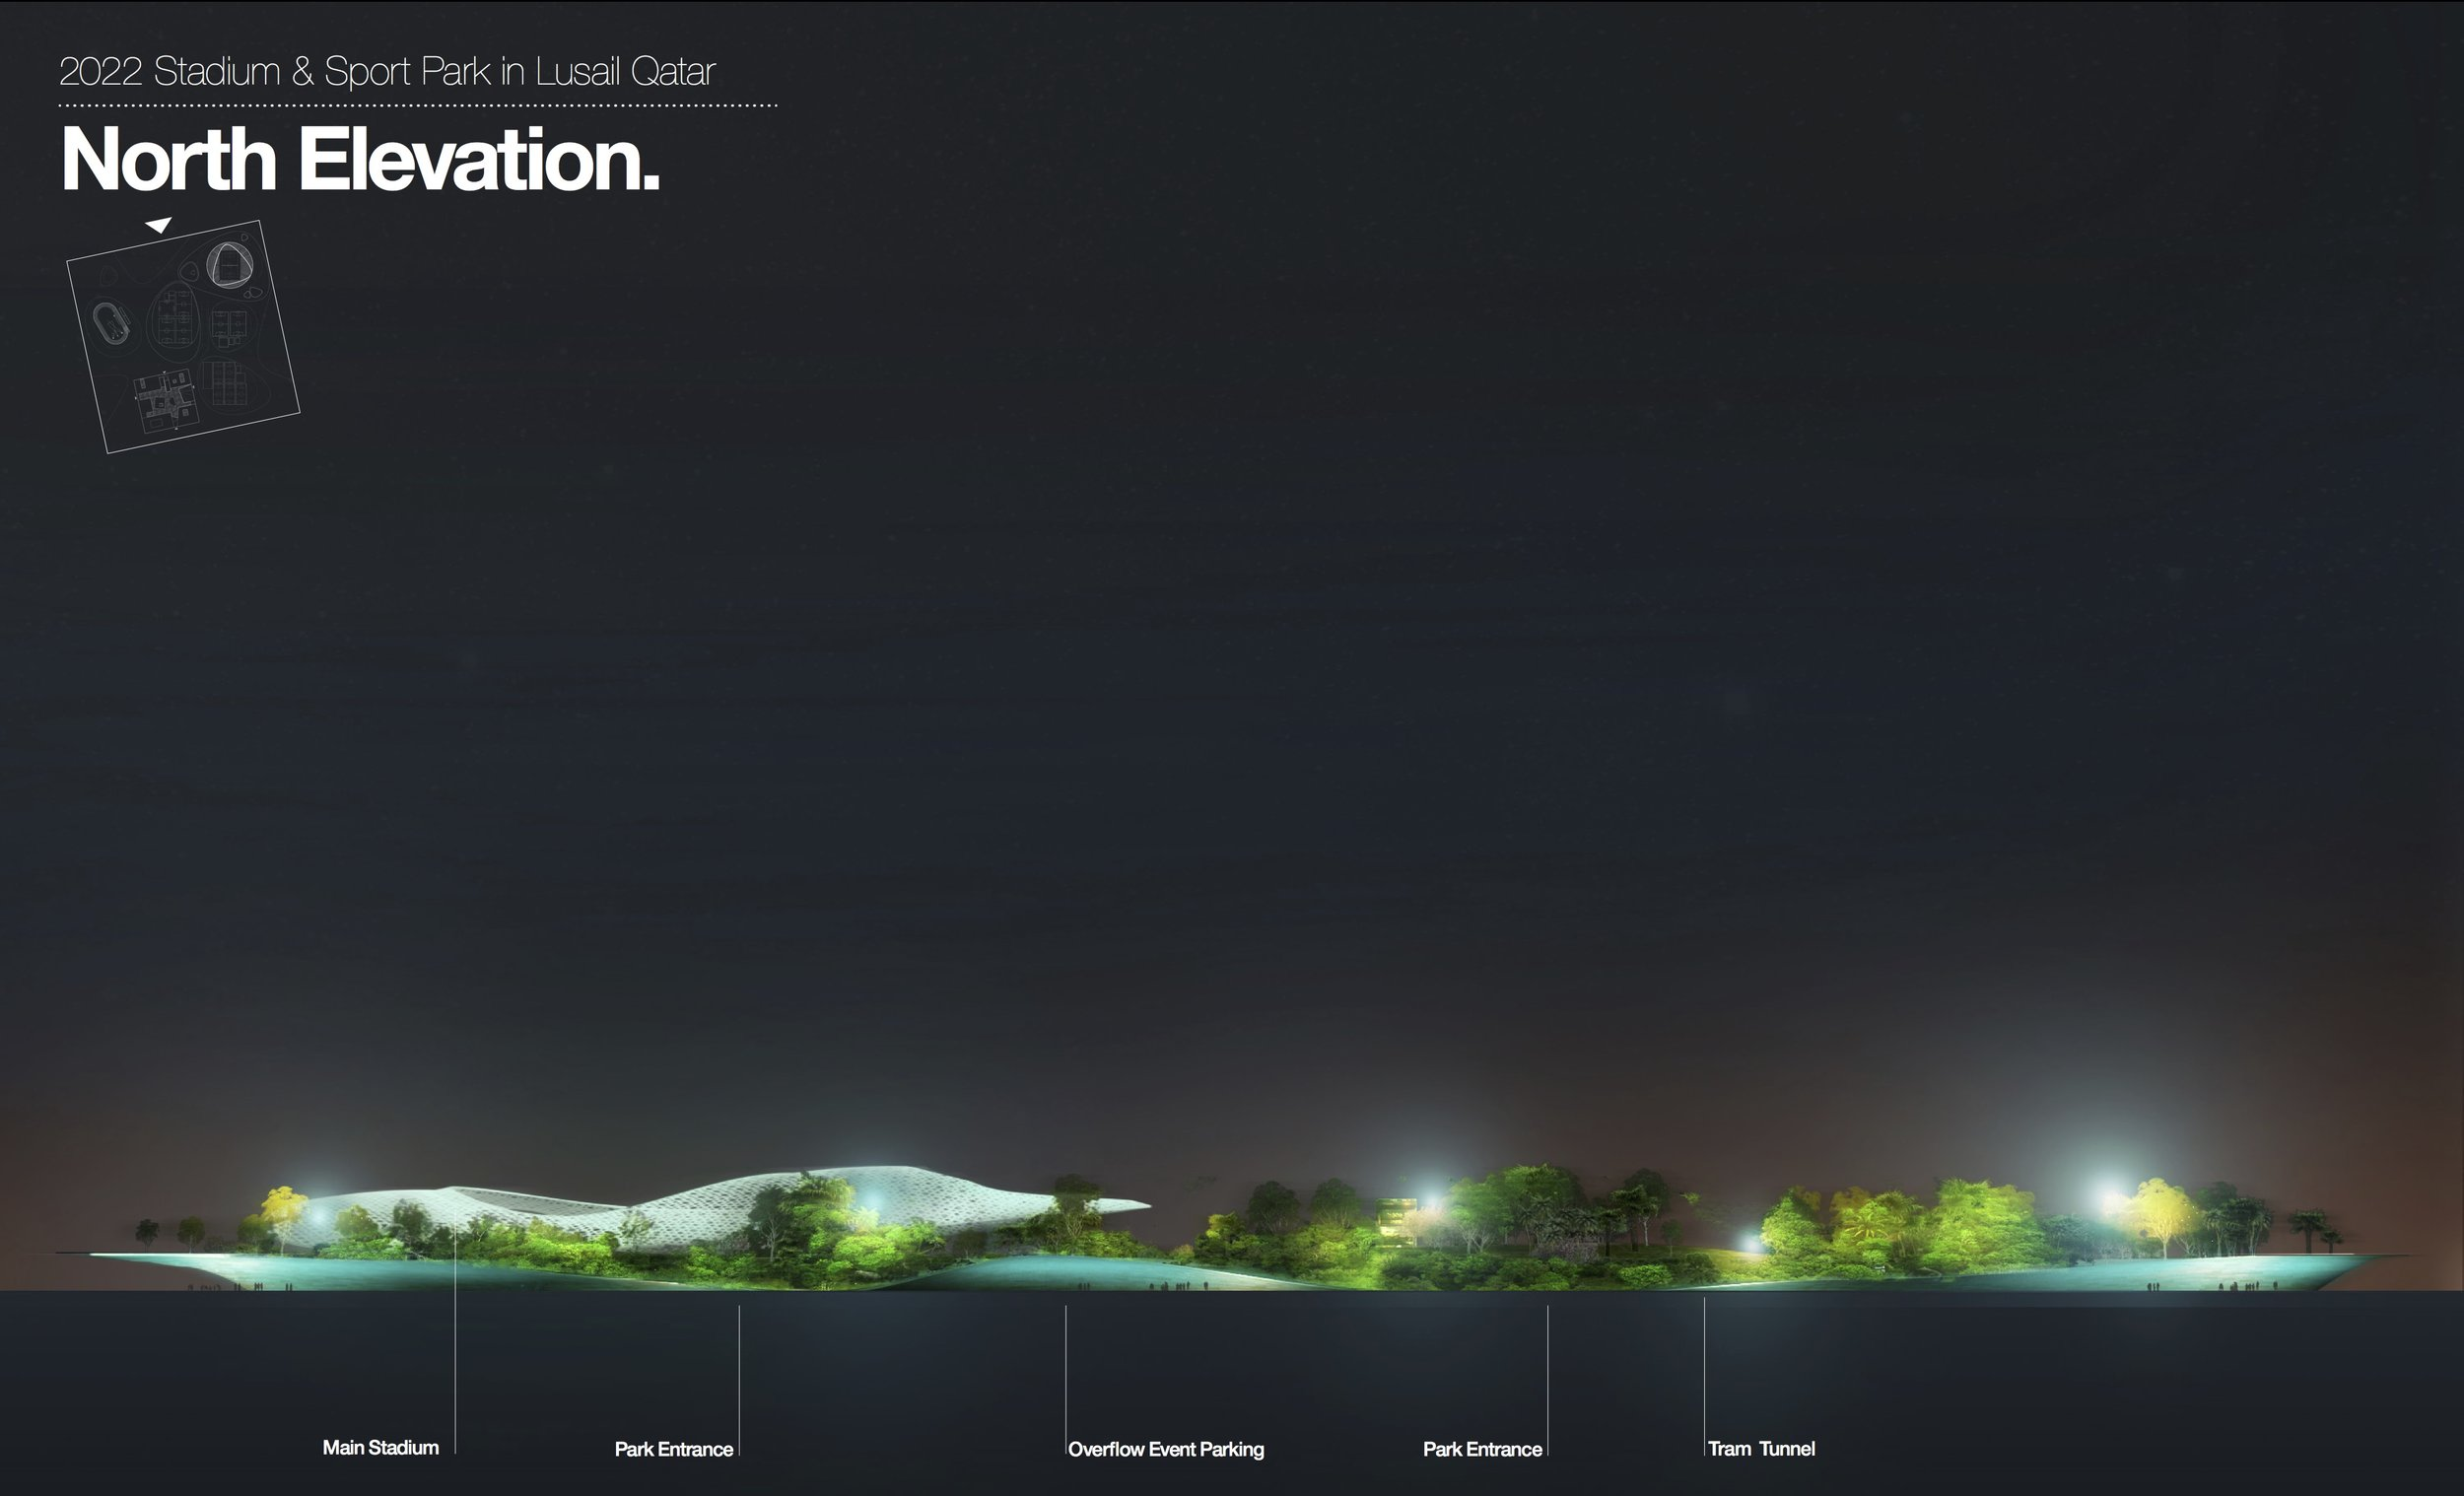 130730 Qatar_Main_Stadium_Concept_north elevation 17.jpg